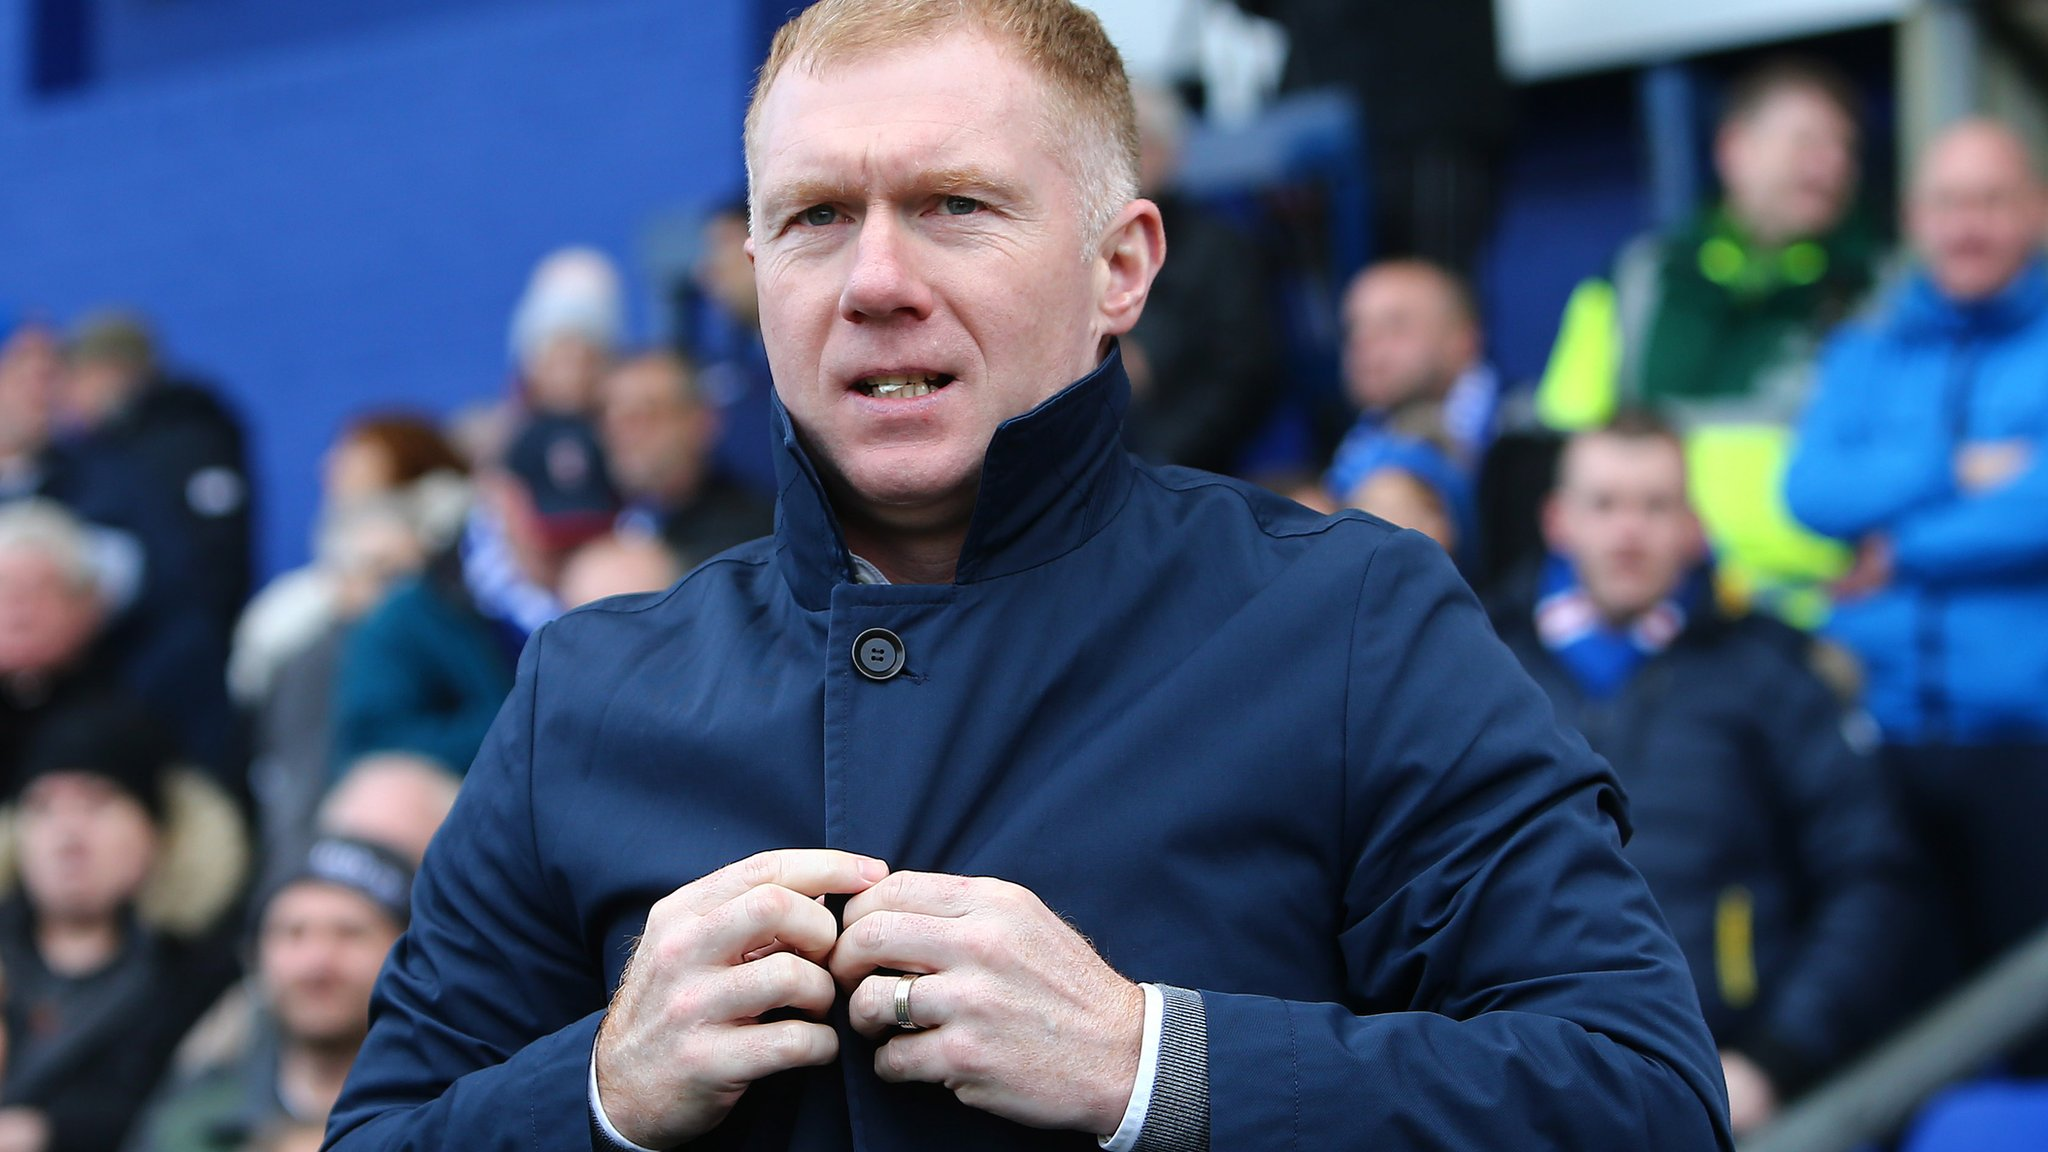 Paul Scholes: Is Man Utd legend making an early impact at Oldham?